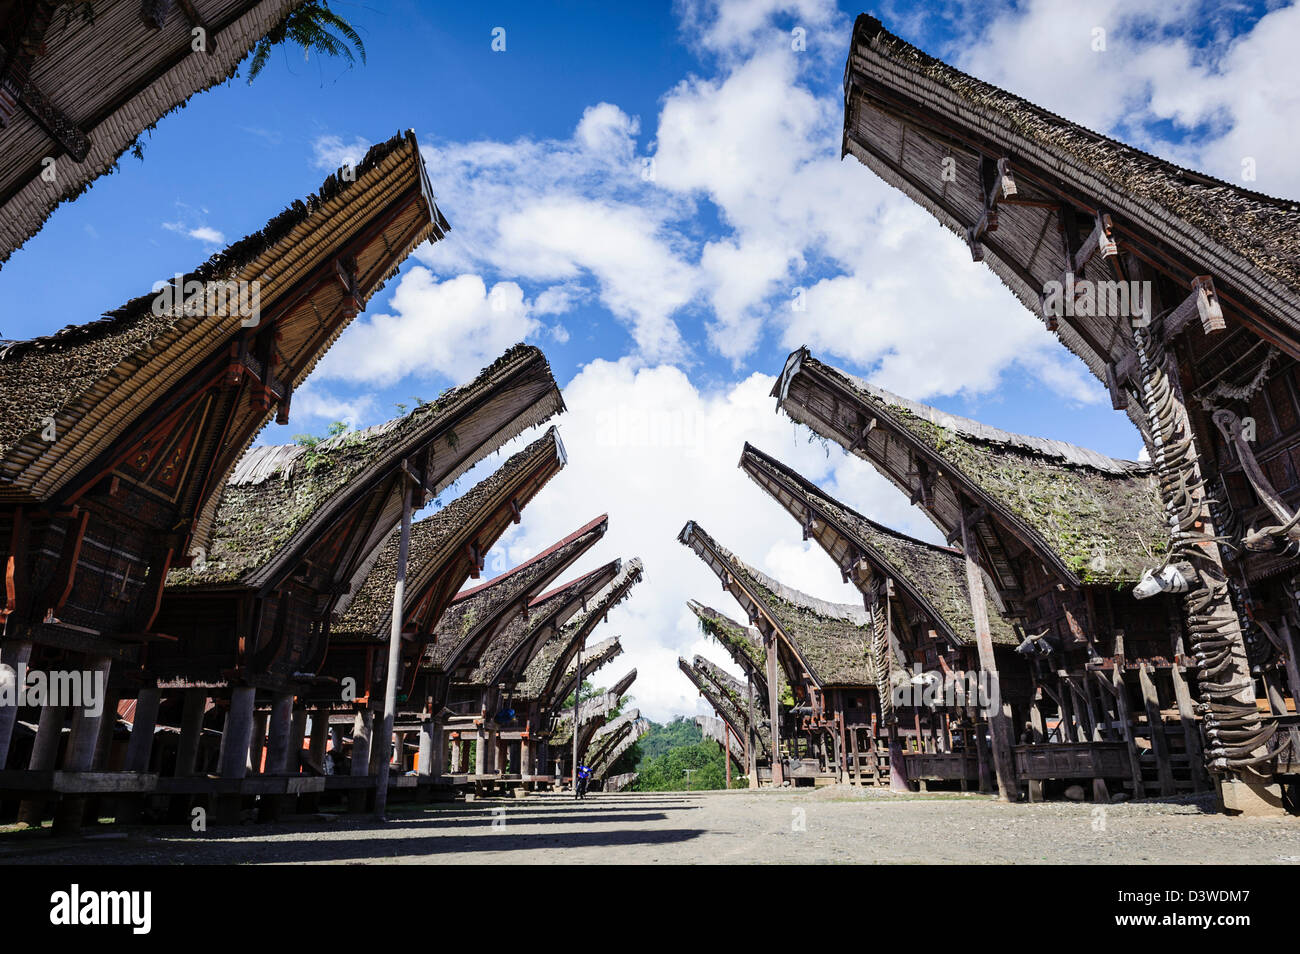 View of a traditional Tana Toraja village with typical houses, Sulawesi, Indonesia - Stock Image